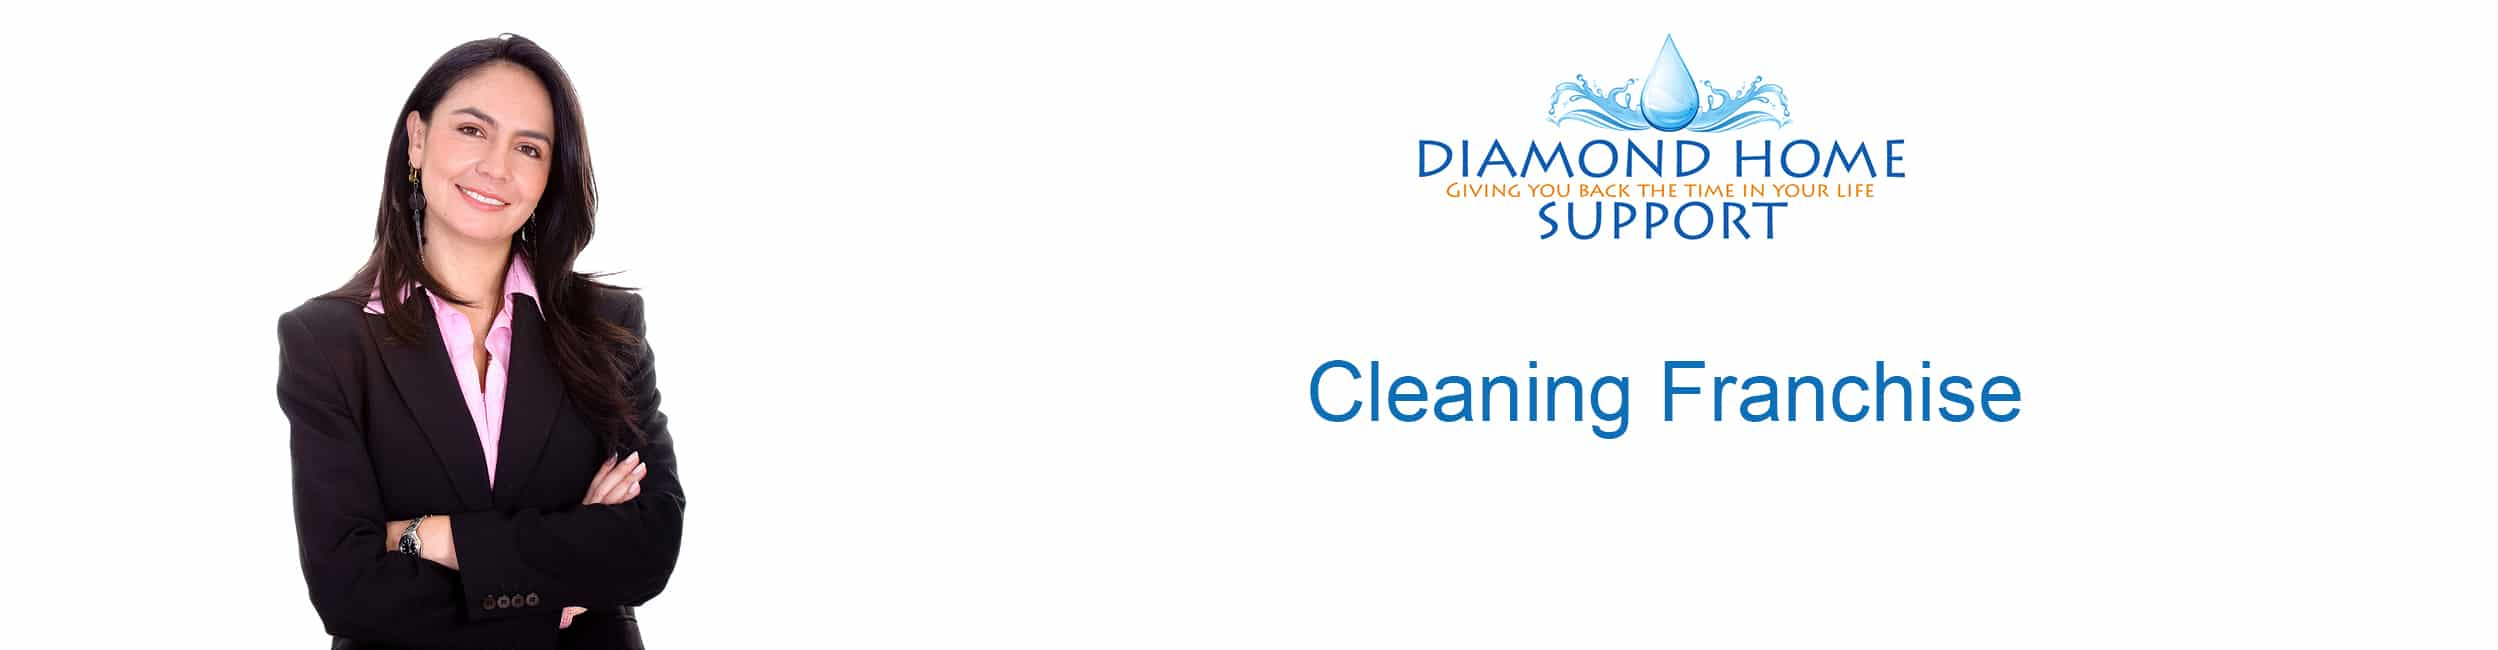 Diamond Home Support Domestic Cleaning Franchise Package